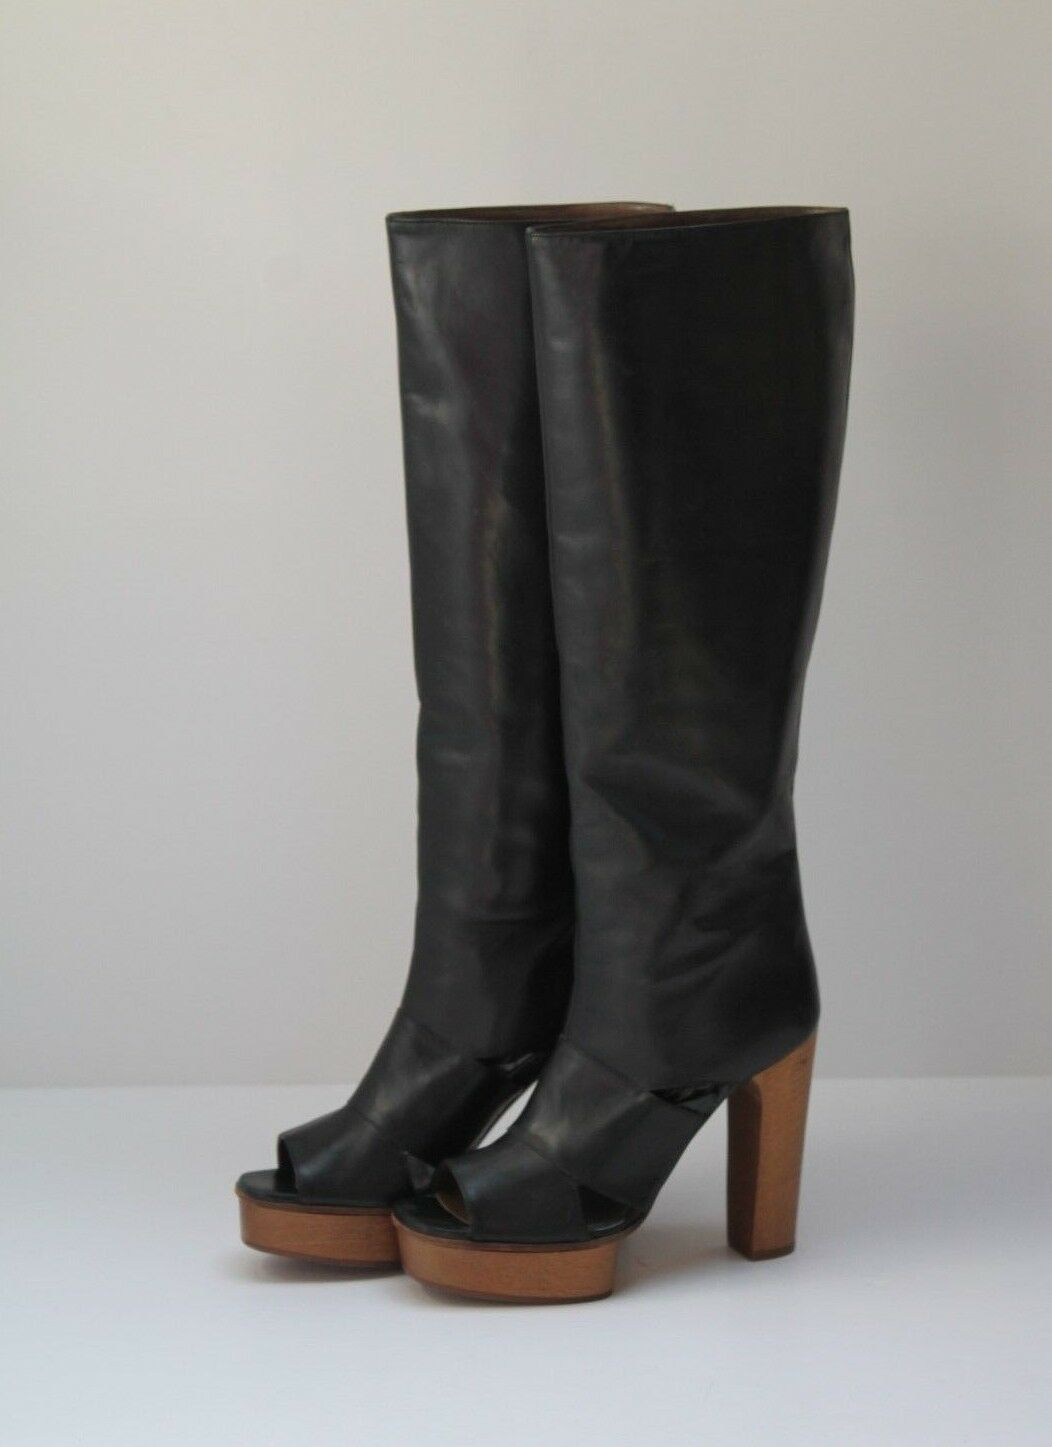 MARNI Boots, Taille Taille Boots, 3.5 UE c92f78